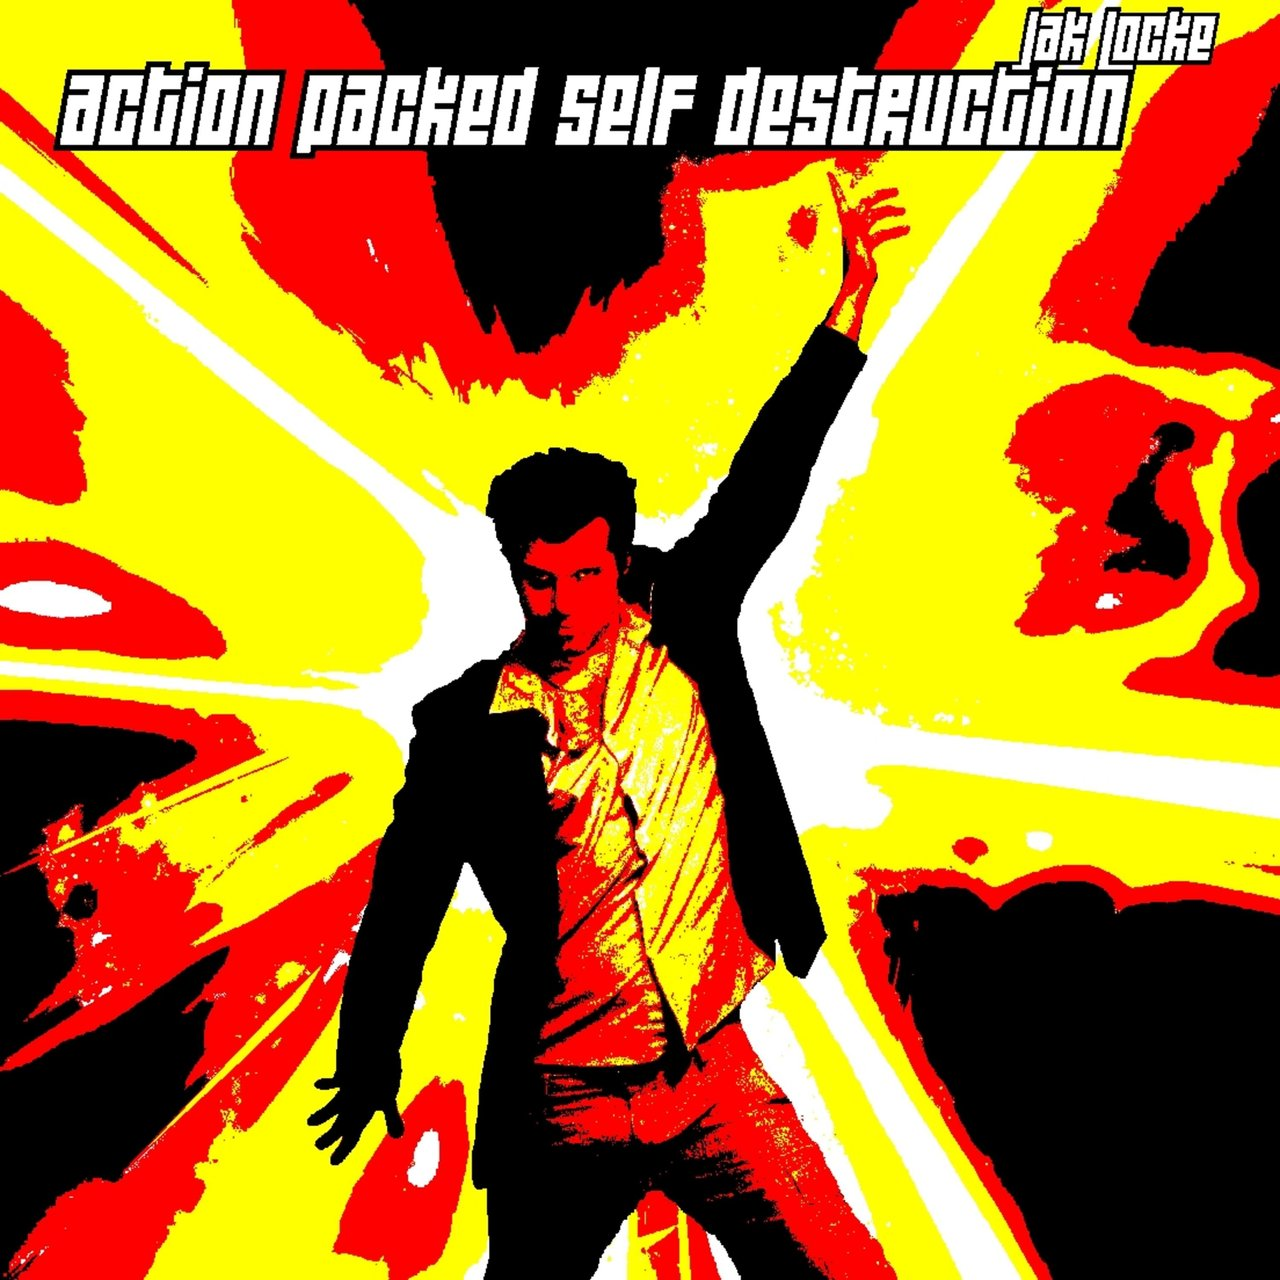 Action Packed Self Destruction